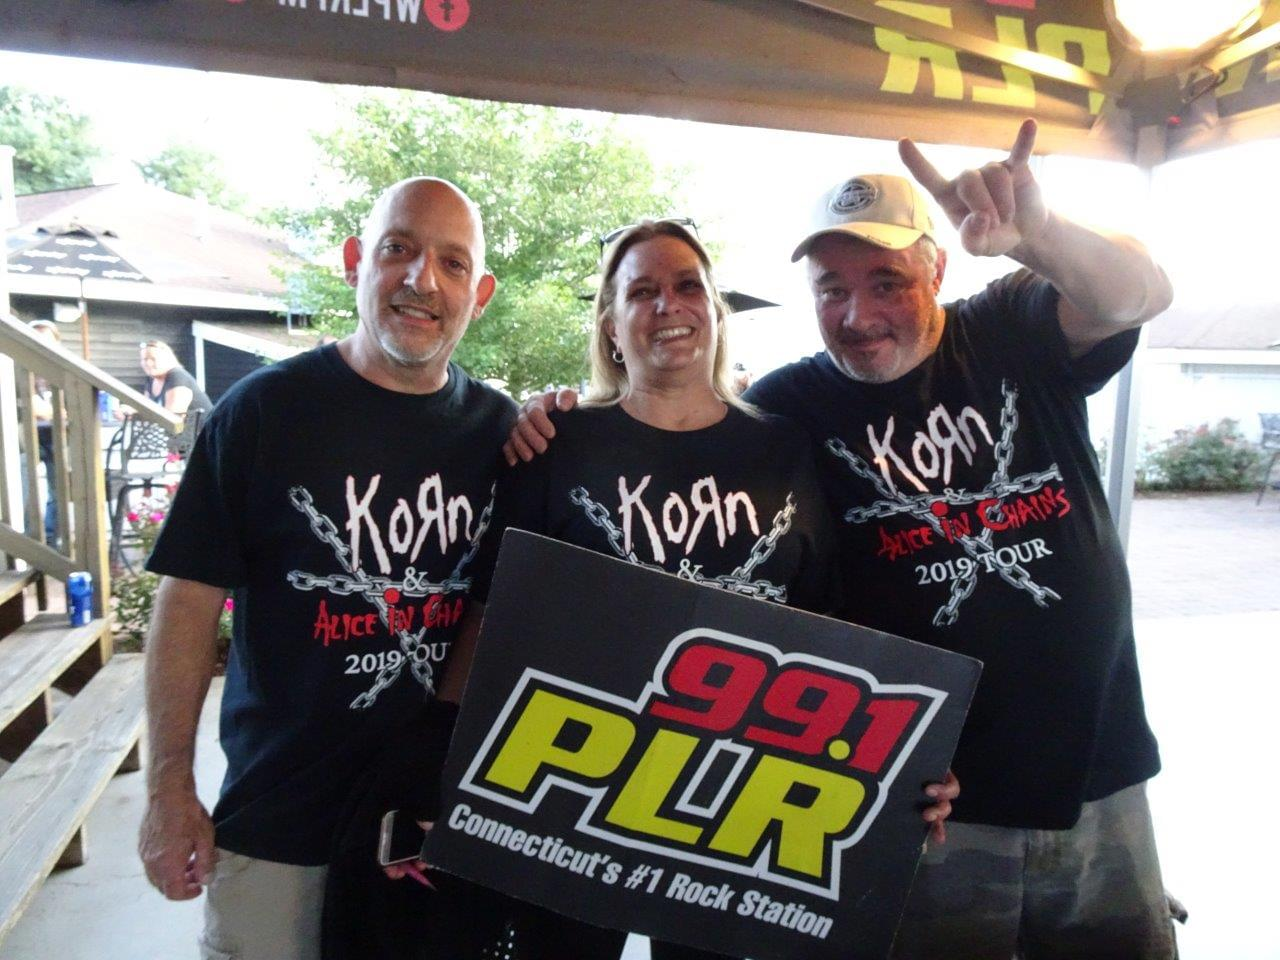 Korn and Alice in Chains at Xfinity Theater 8/10/19